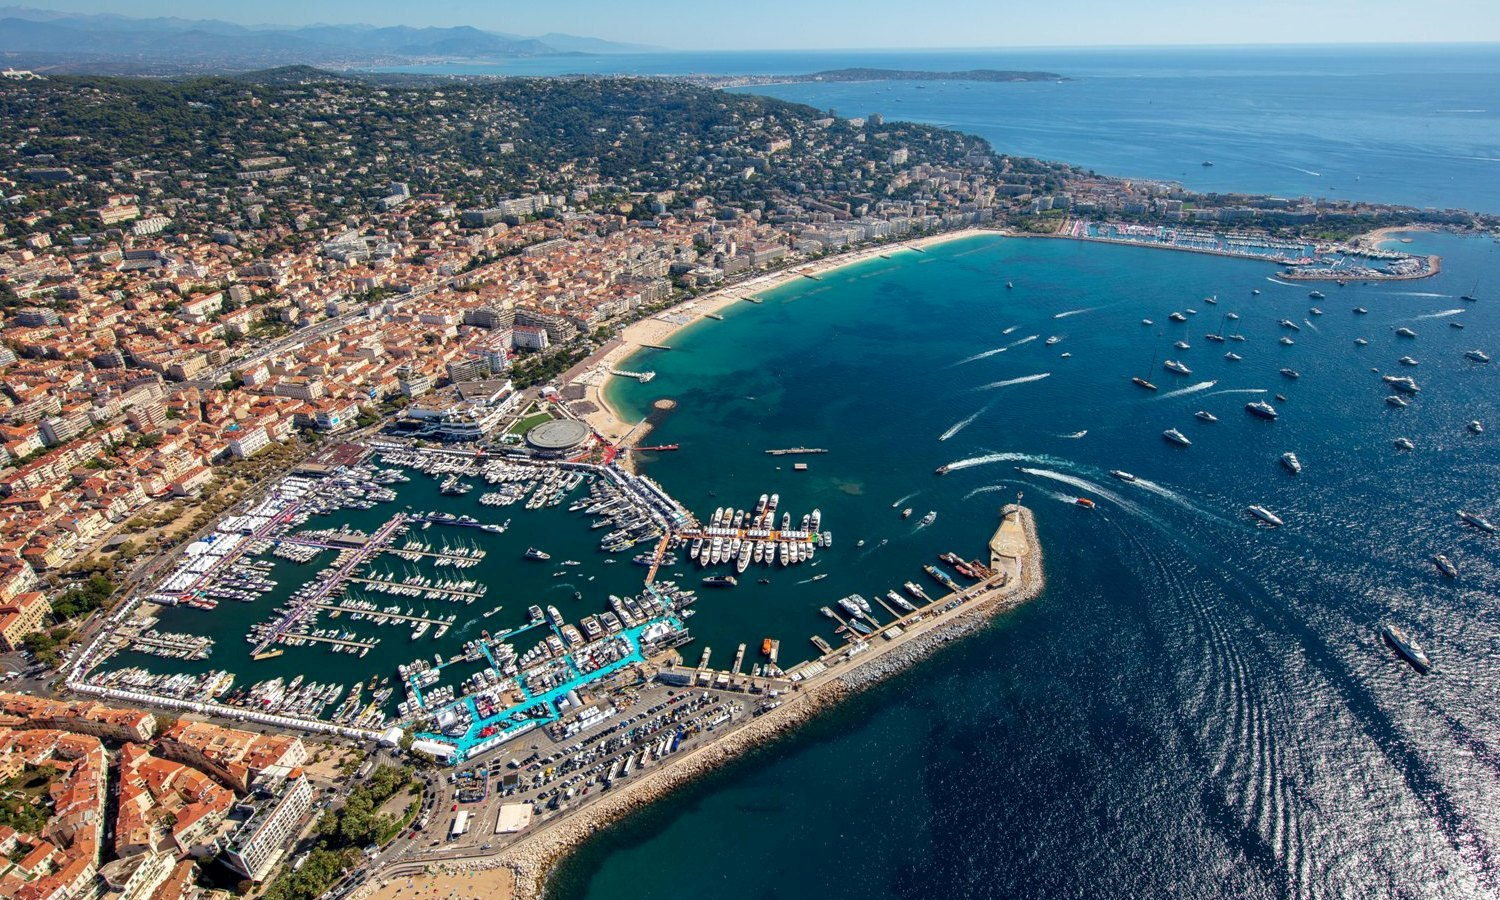 Yachts for Sale in Cannes South of France – Boat Sales